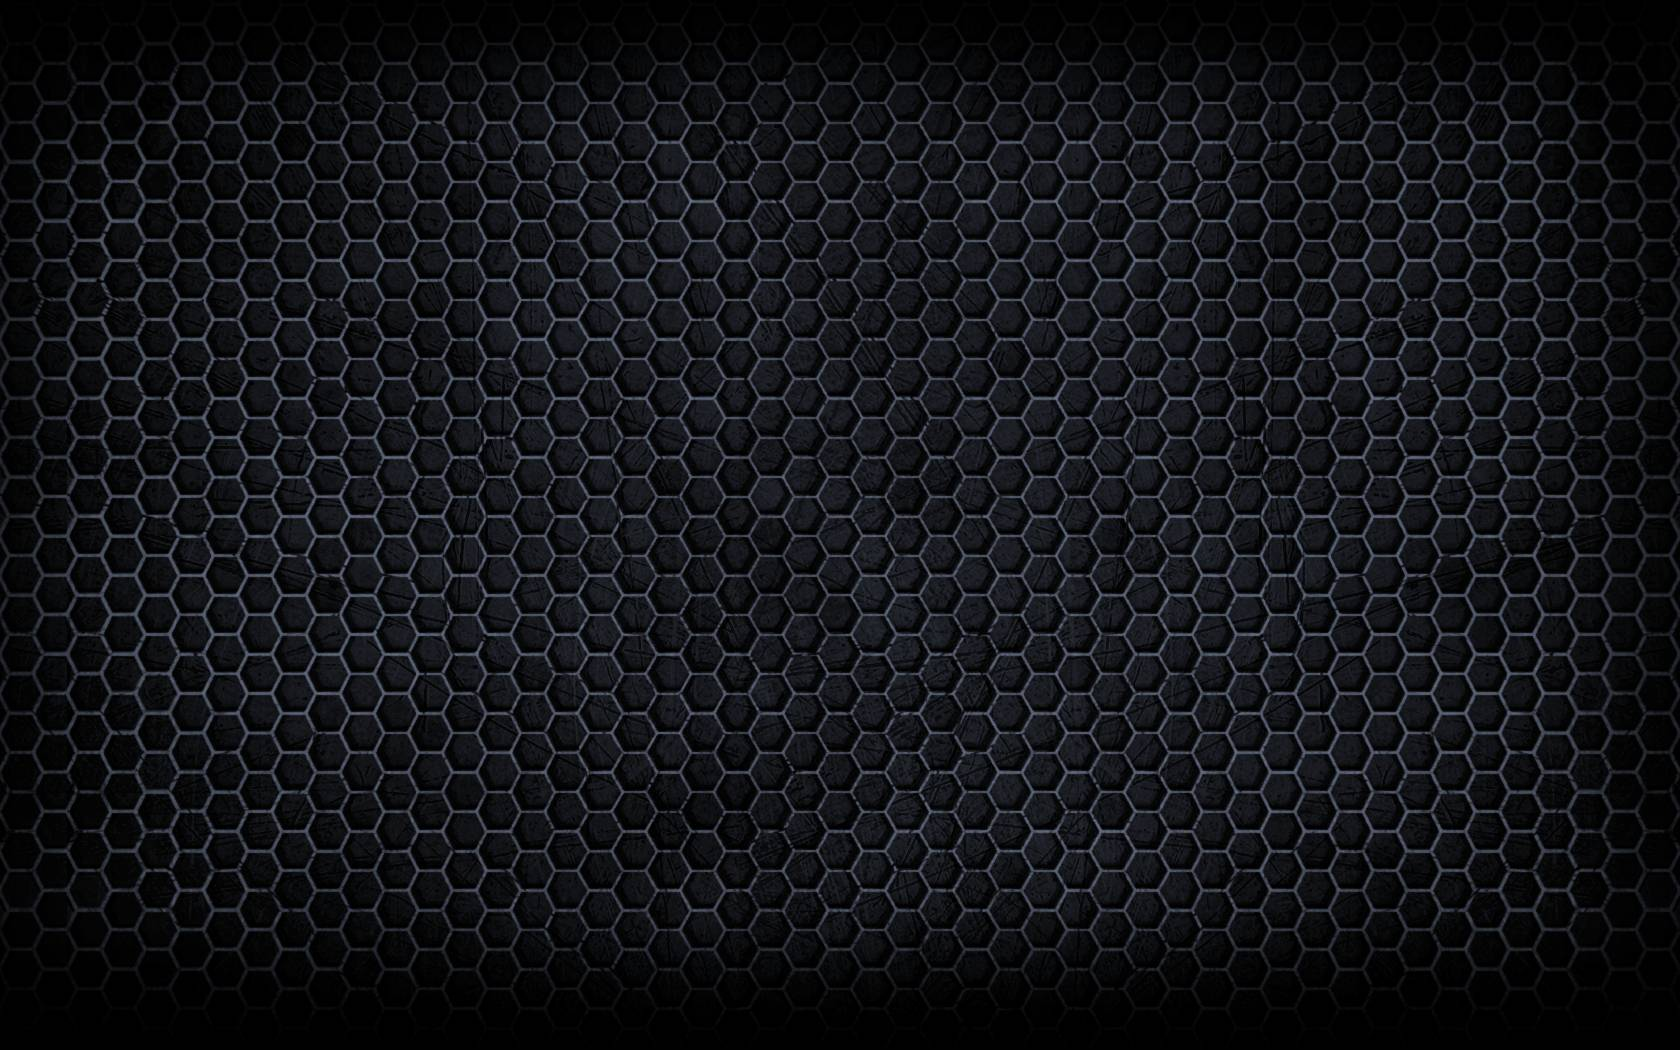 Black Textured Wallpapers - Top Free